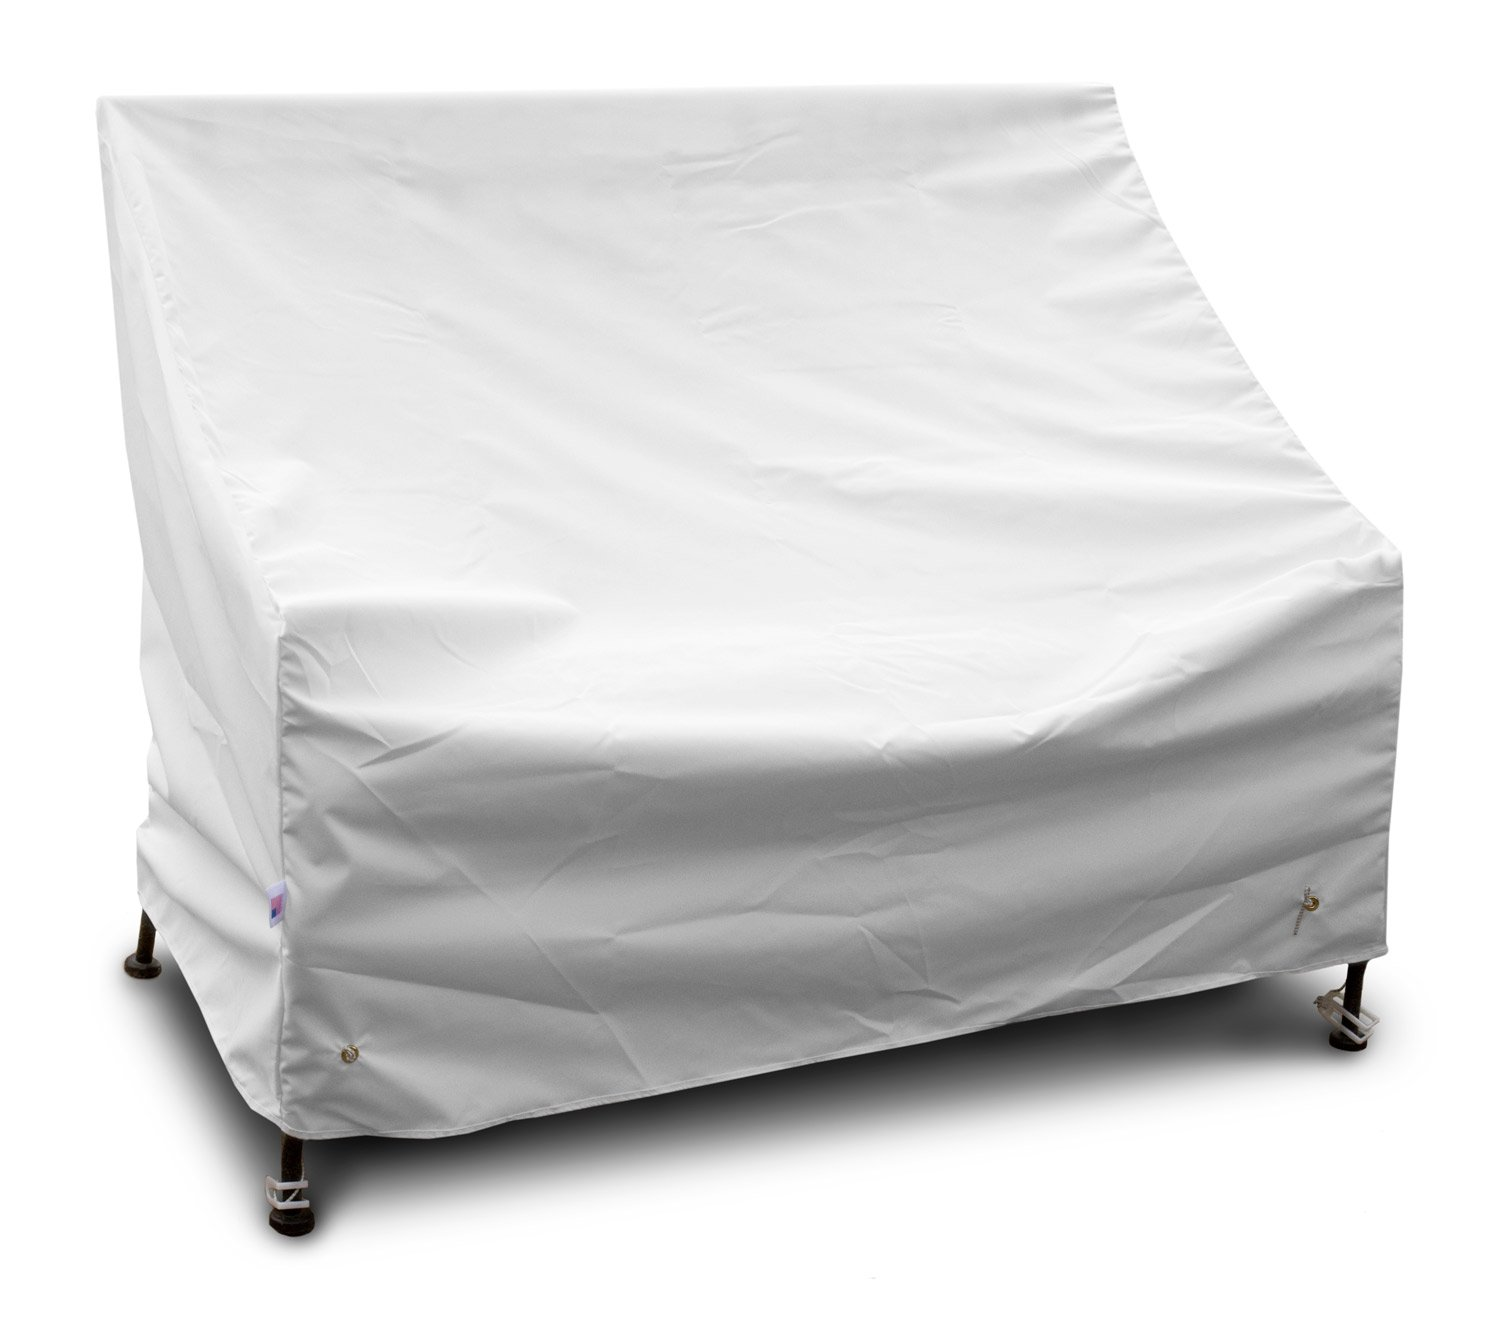 KoverRoos Weathermax 14204 5-Feet Bench/Glider Cover, 75-Inch Width by 28-Inch Diameter by 37-Inch Height, White by KOVERROOS (Image #1)